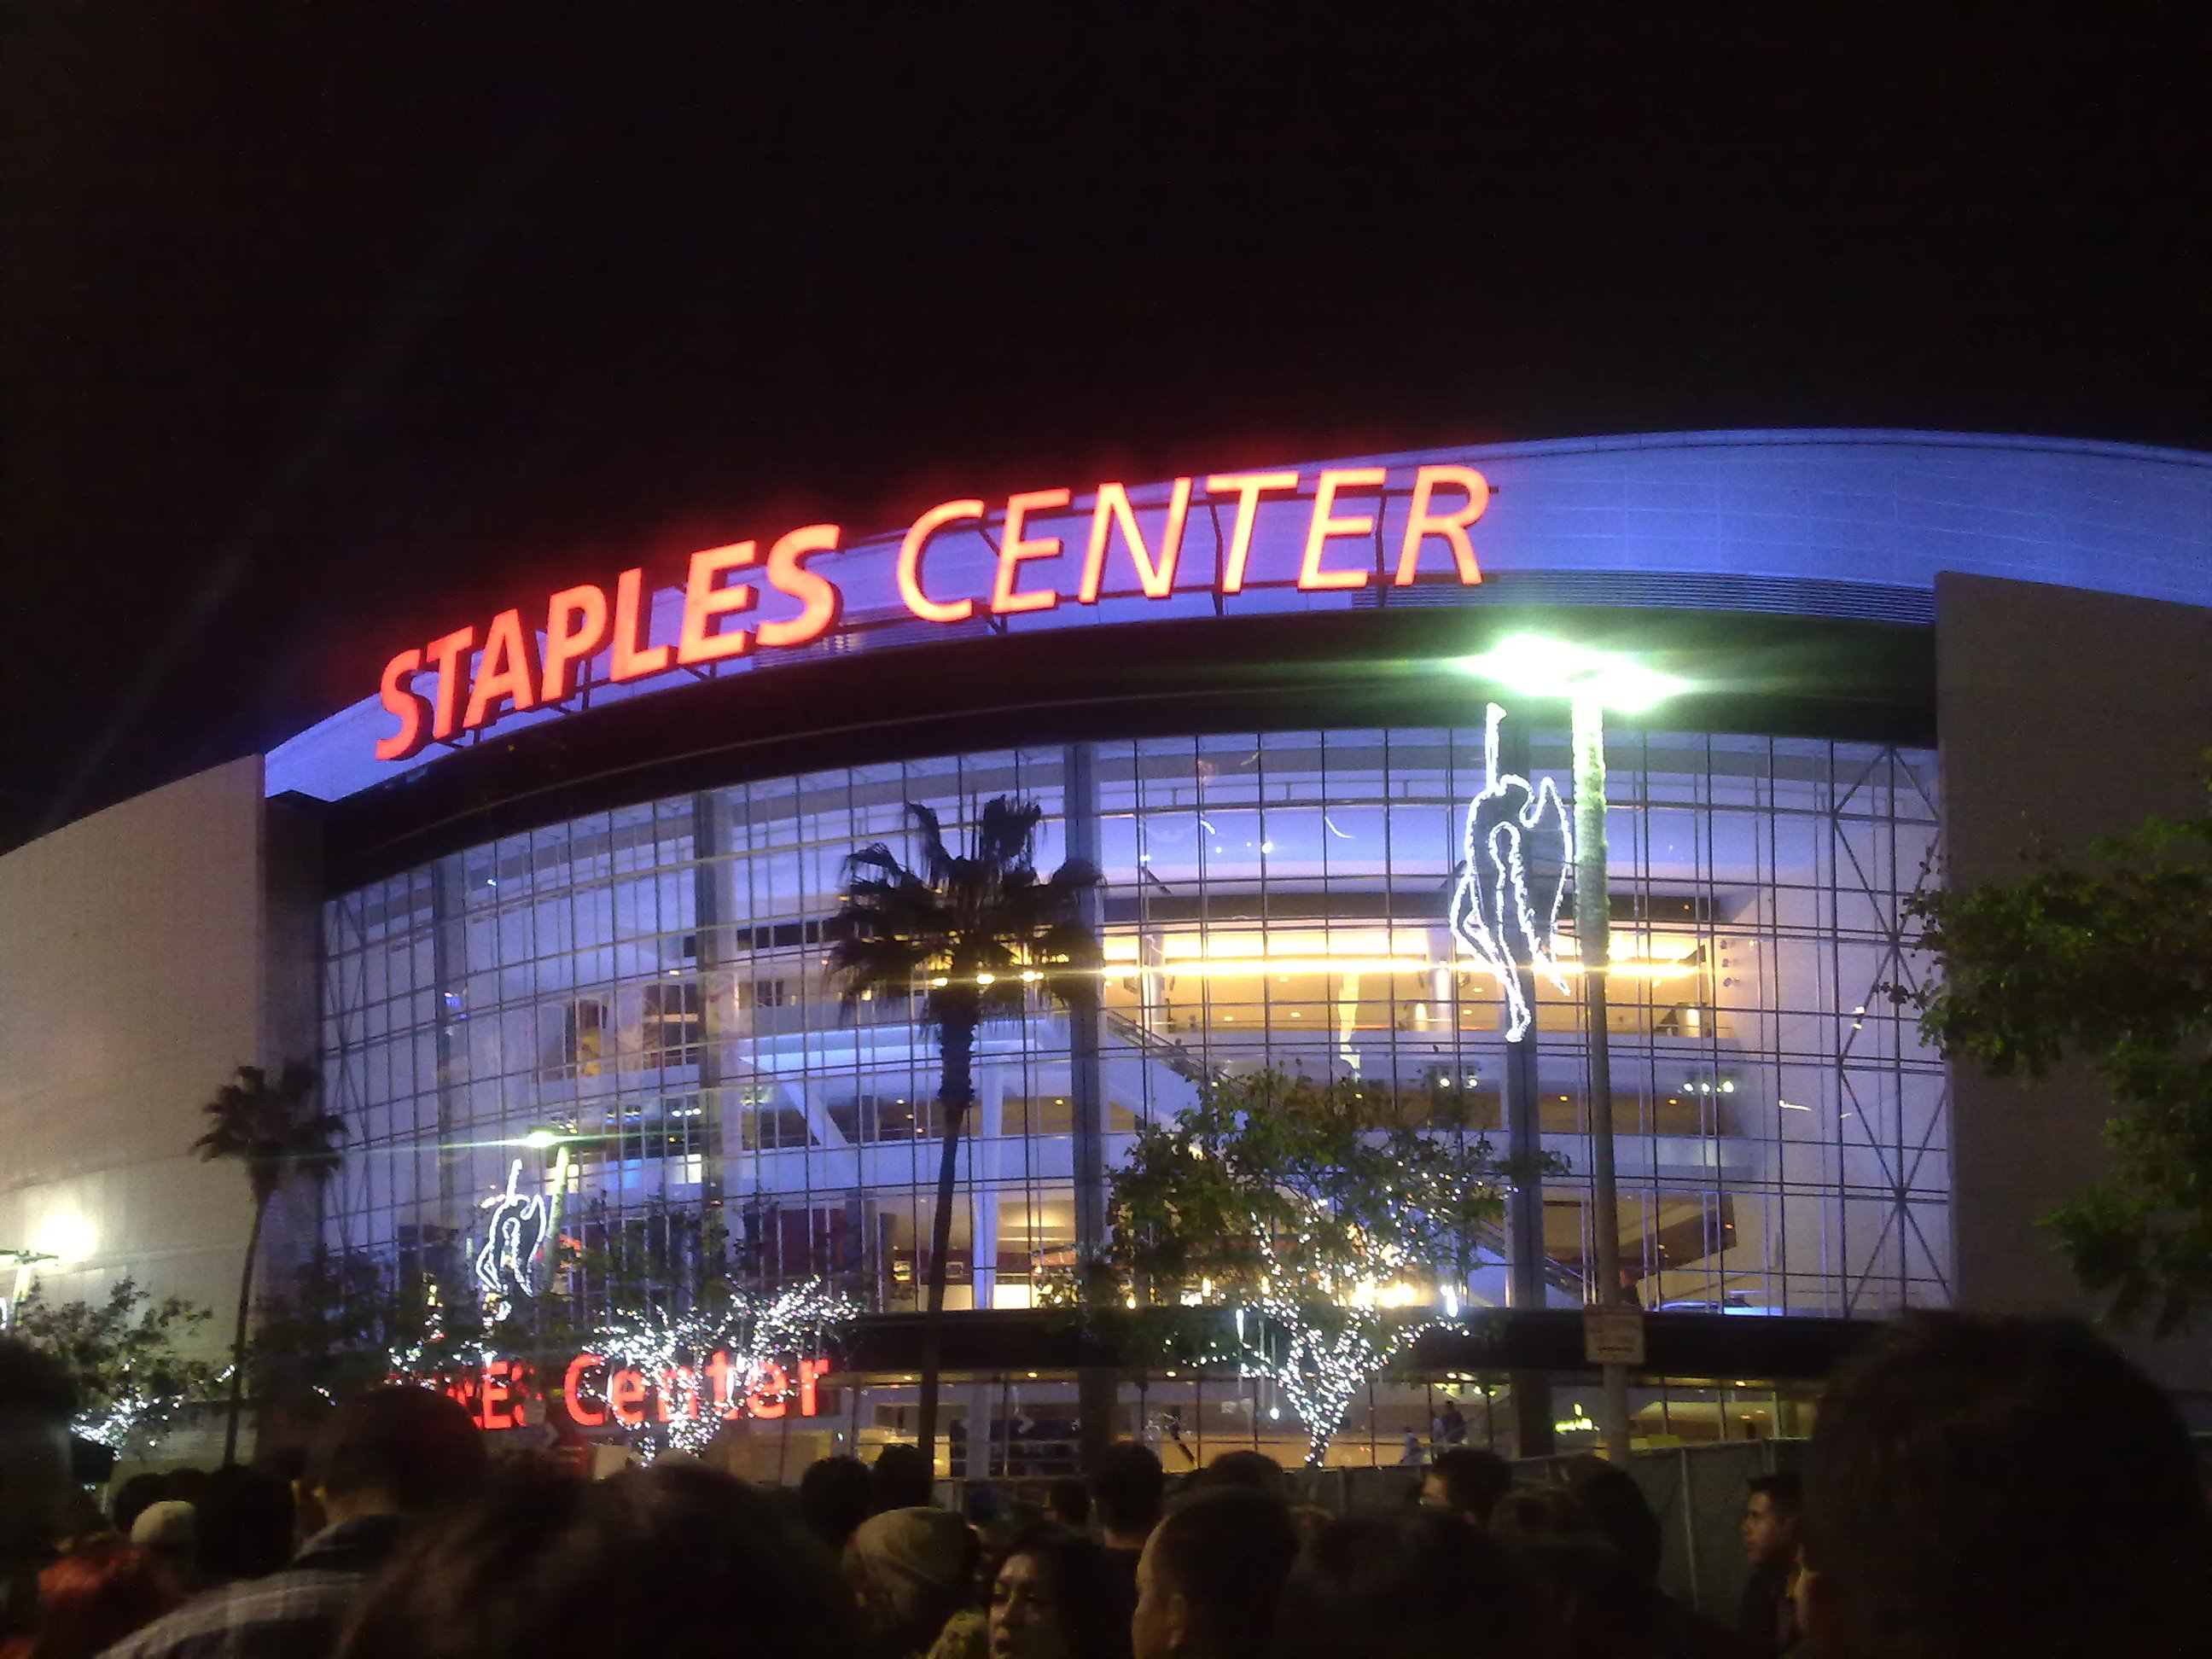 View the Staples Center seating chart, seating map, seat views and rows, and also find great deals on events tickets at Staples Center with TicketIQ. TicketIQ .